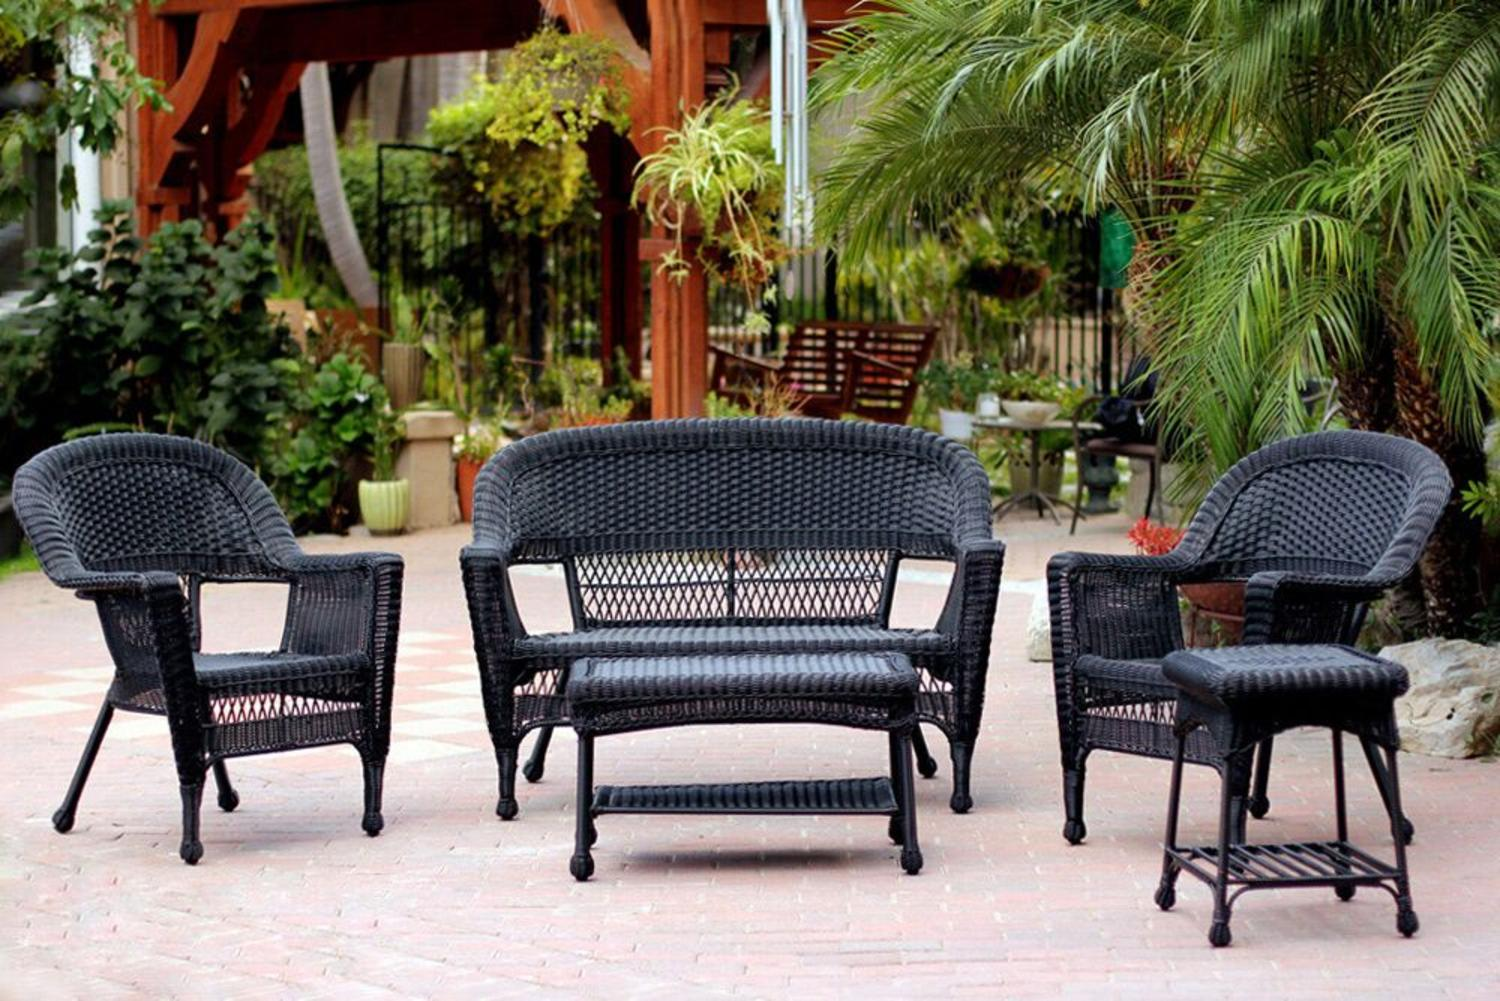 5 Piece Black Resin Wicker Patio Chair, Loveseat And Table Furniture Set